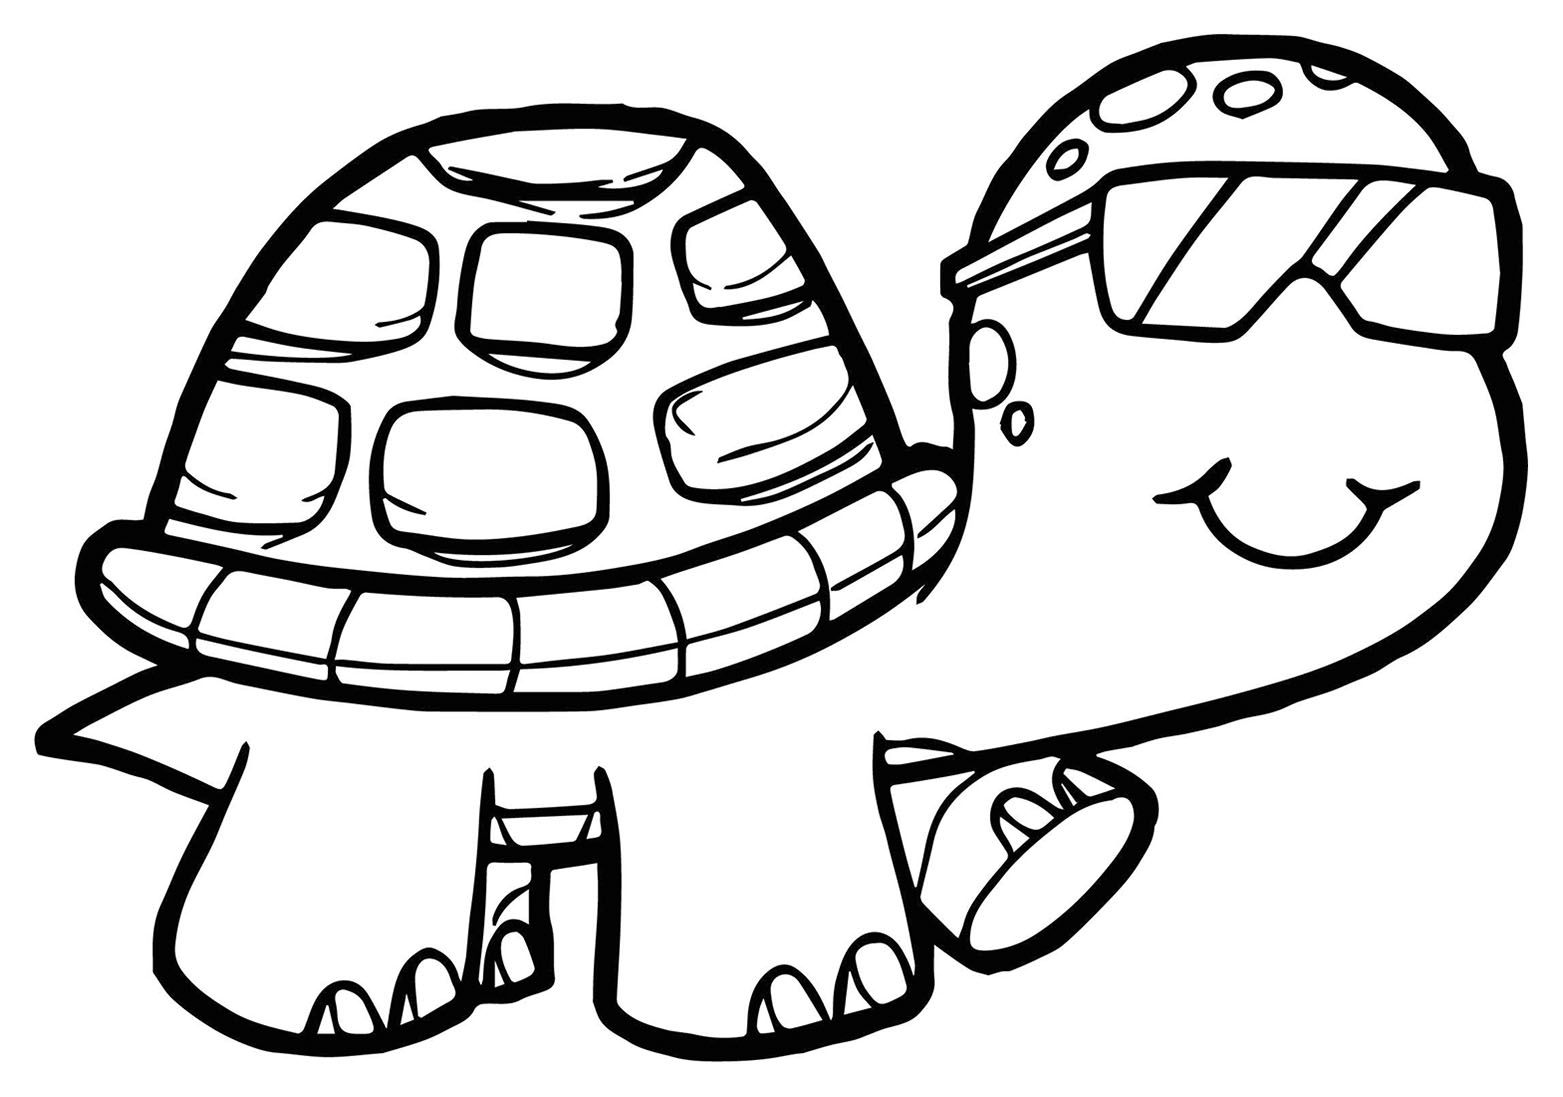 coloring pages turtle turtles to print turtles kids coloring pages turtle pages coloring